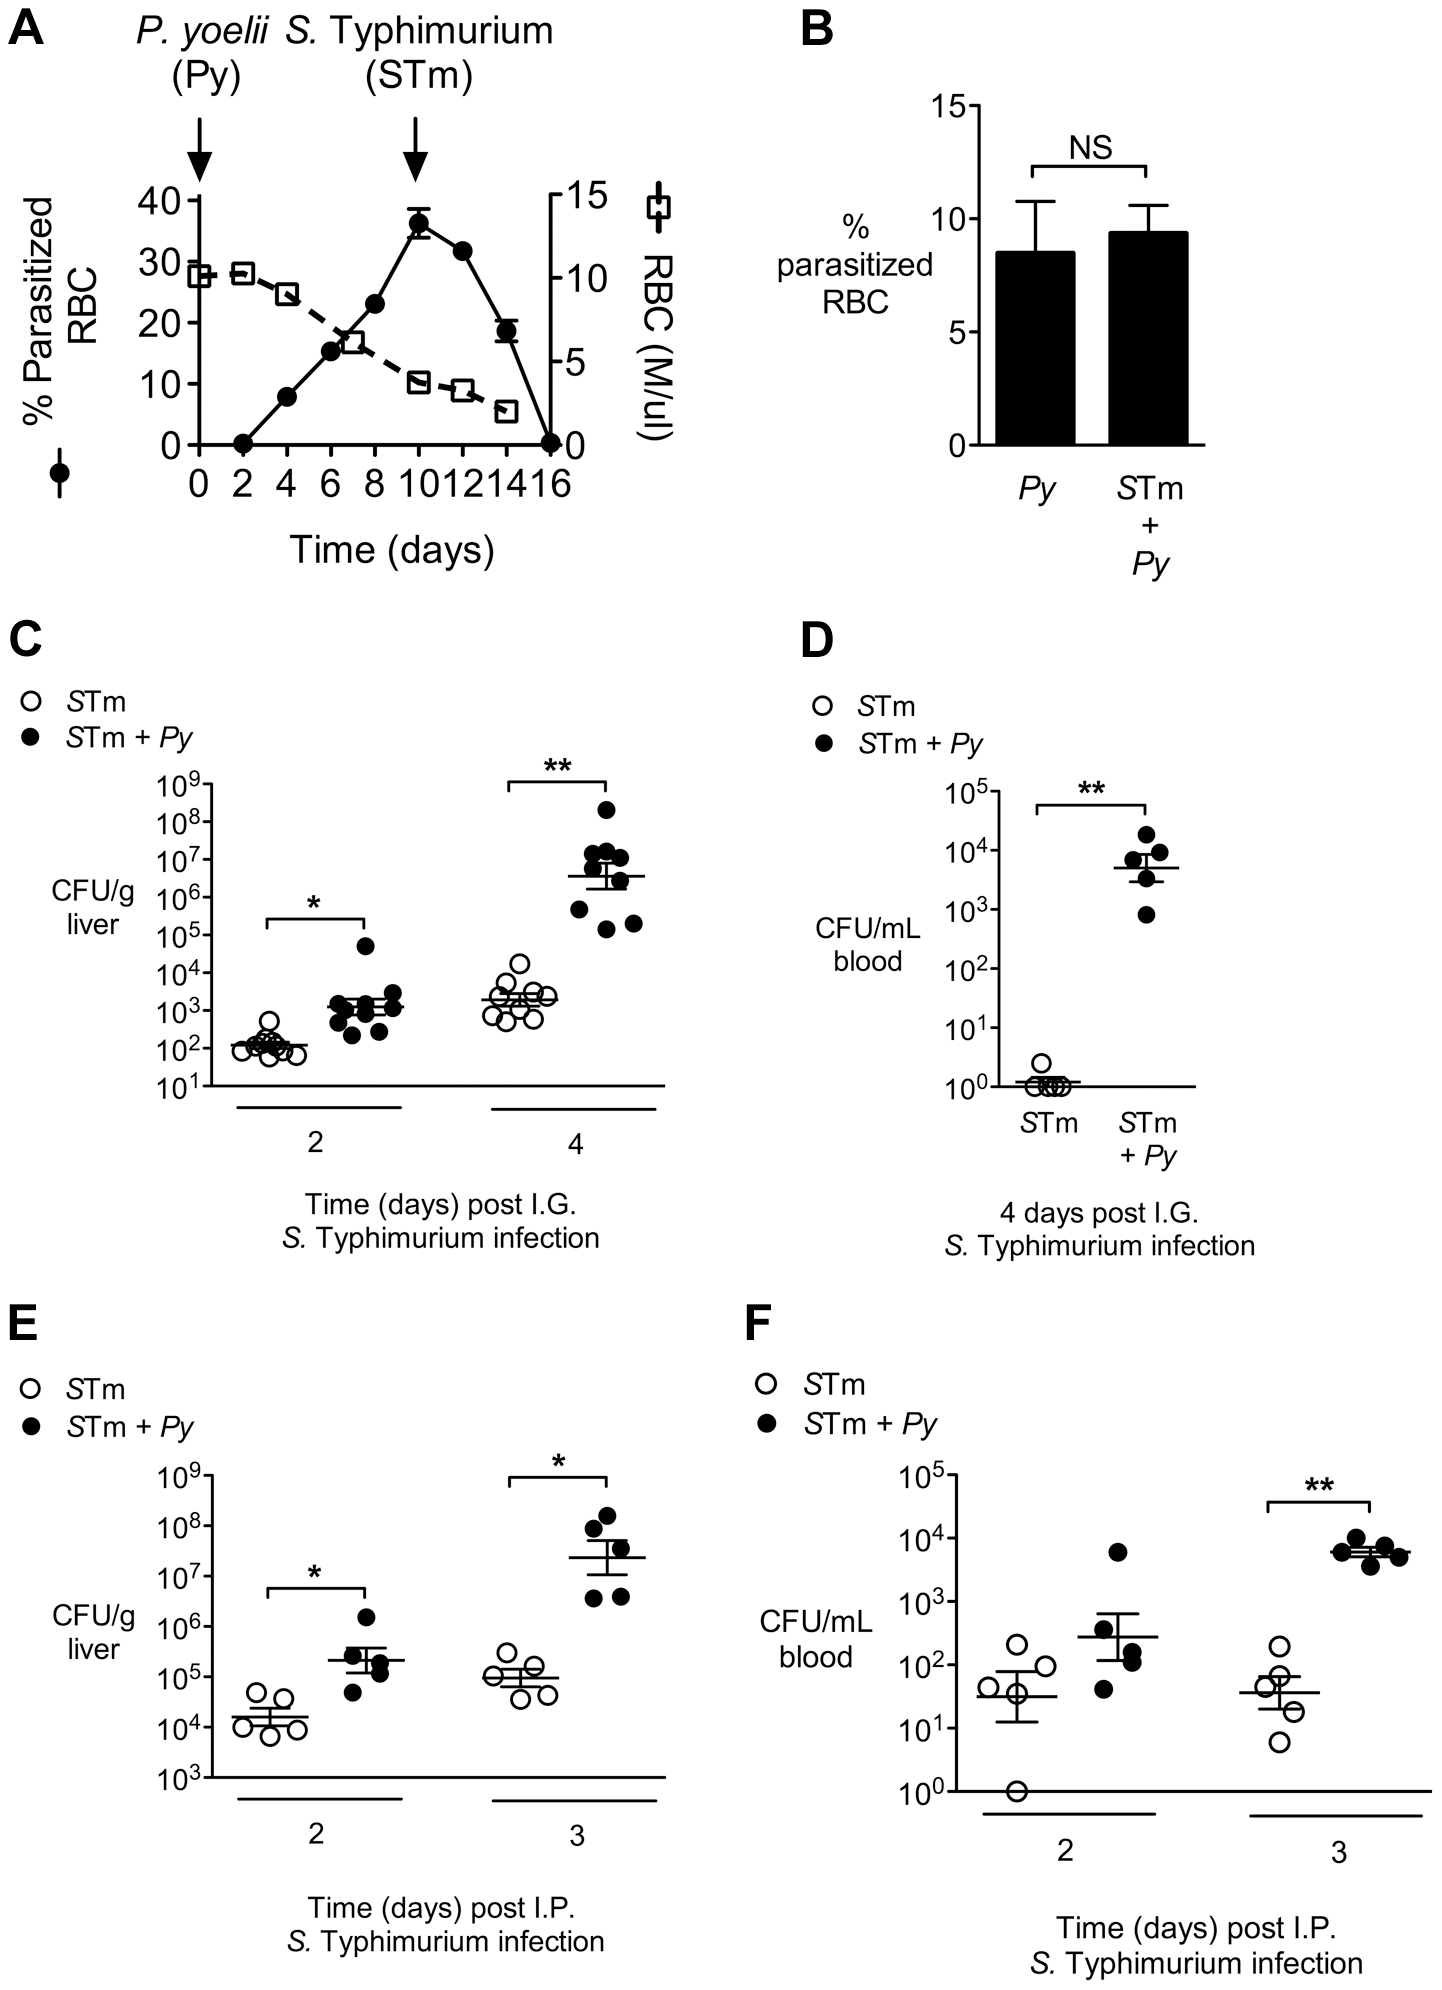 Increased systemic replication of <i>S.</i> Typhimurium (<i>S</i>Tm) during concurrent <i>P. yoelii</i> (<i>Py</i>) infection.